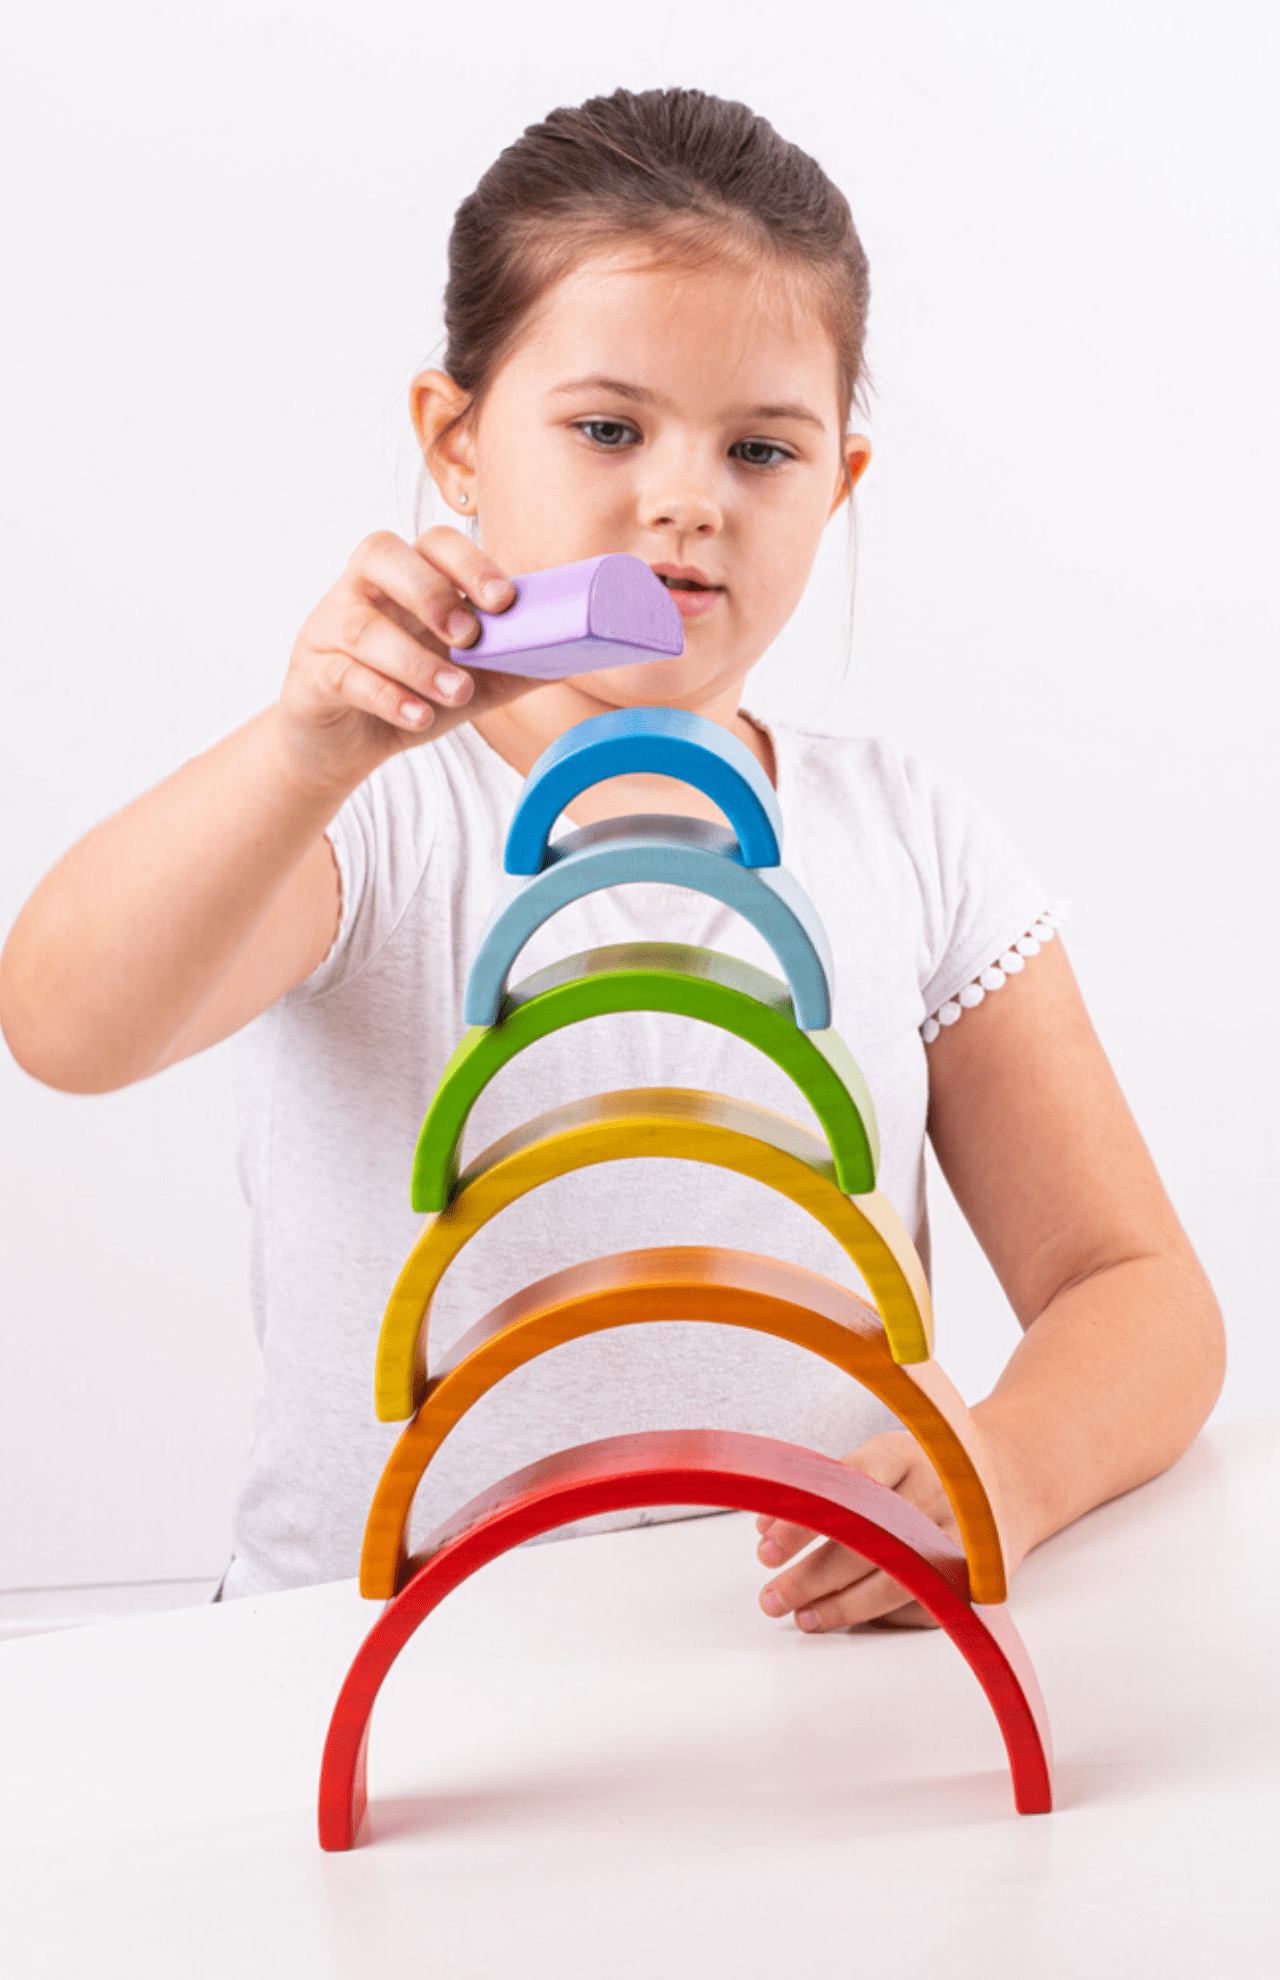 Girl stacking rainbow arches.